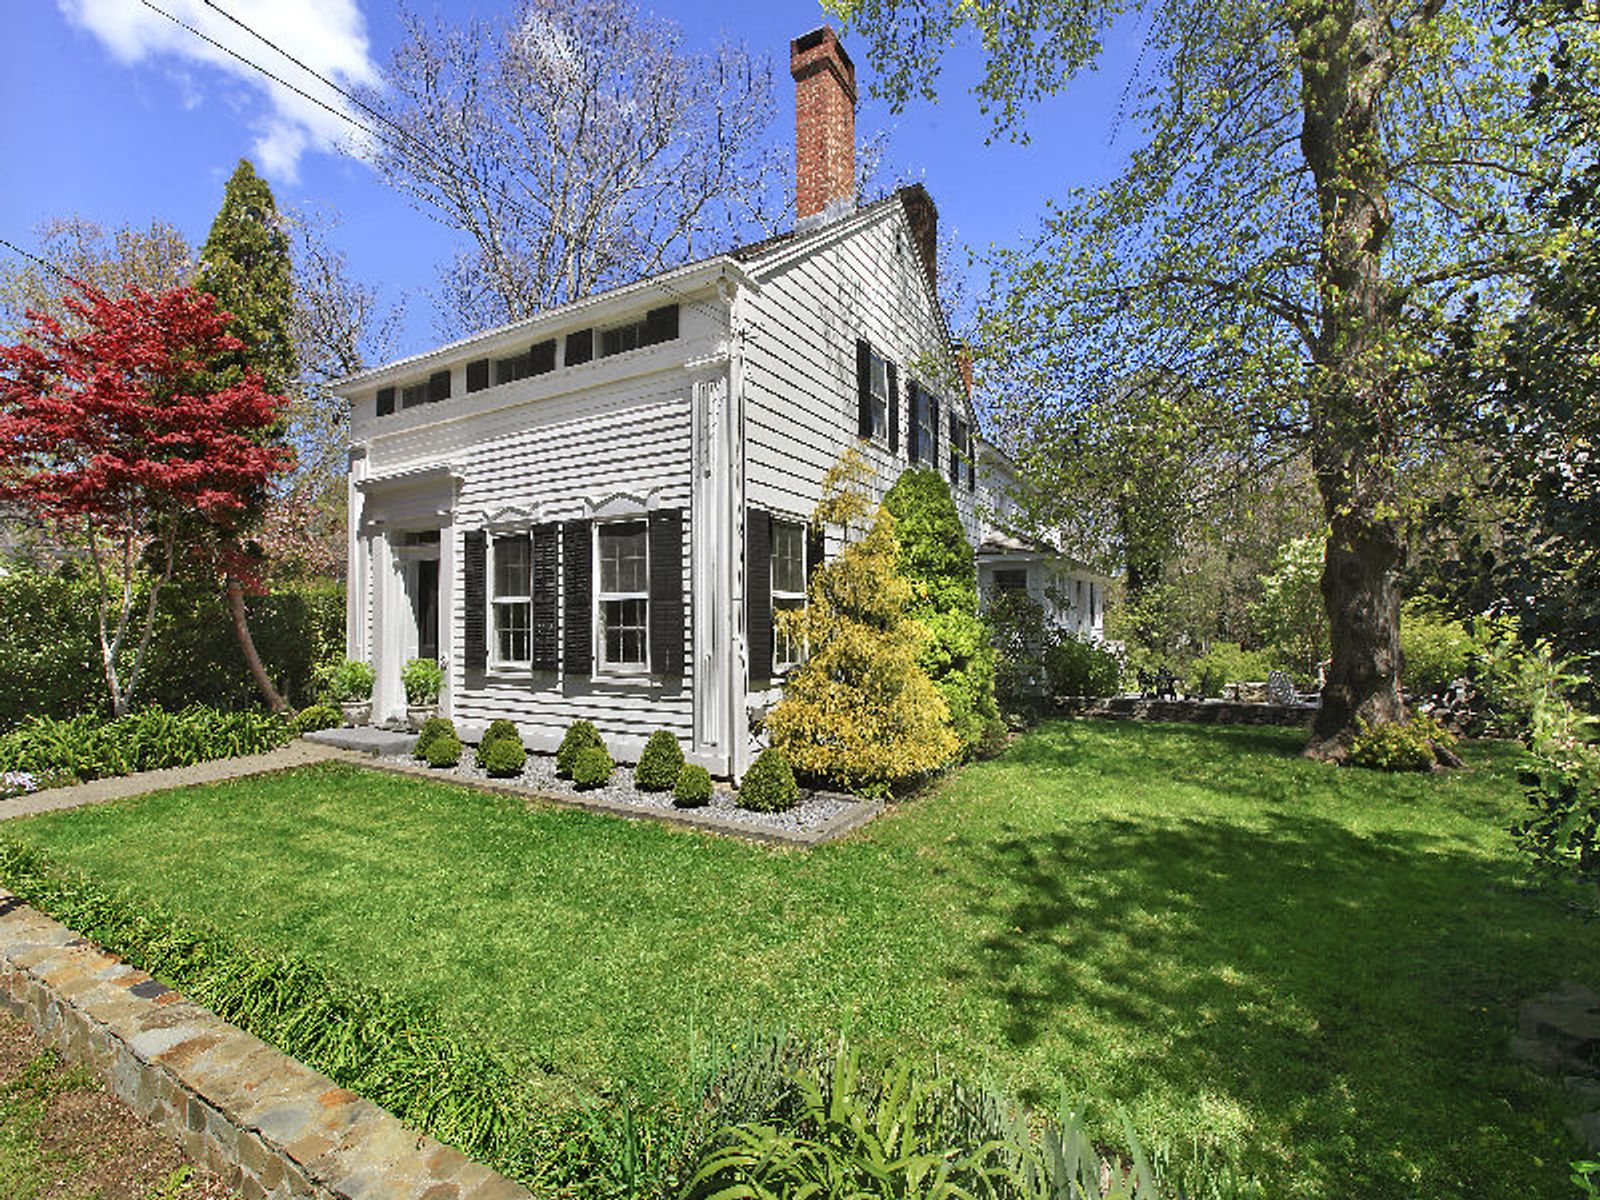 Greek Revival Whaling Captain's House, Sag Harbor NY Single Family Home - Hamptons Real Estate